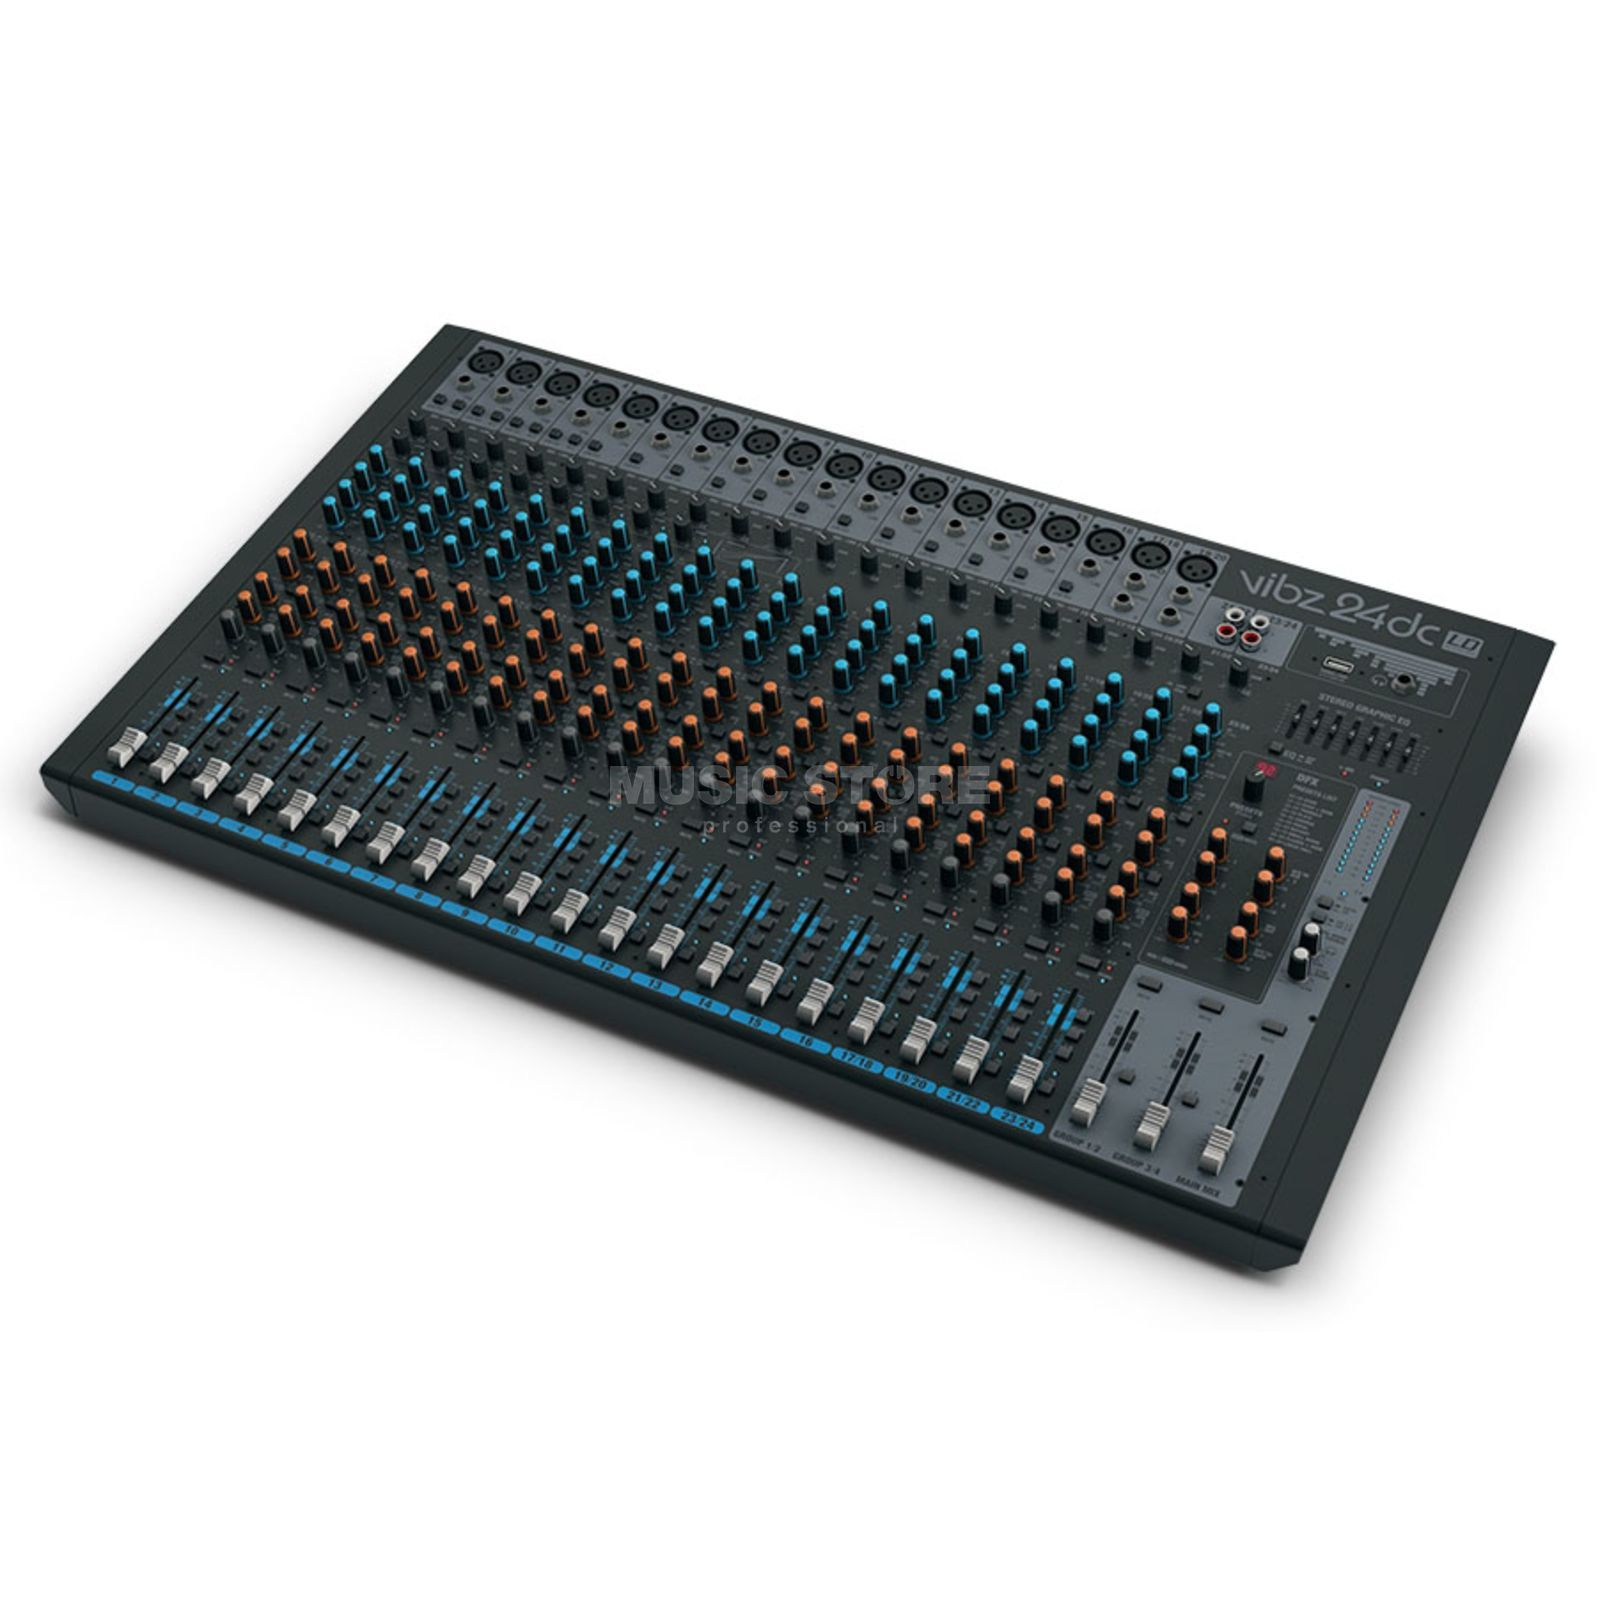 LD-Systems VIBZ 24 DC 24 Kanal Mixer Imagen del producto